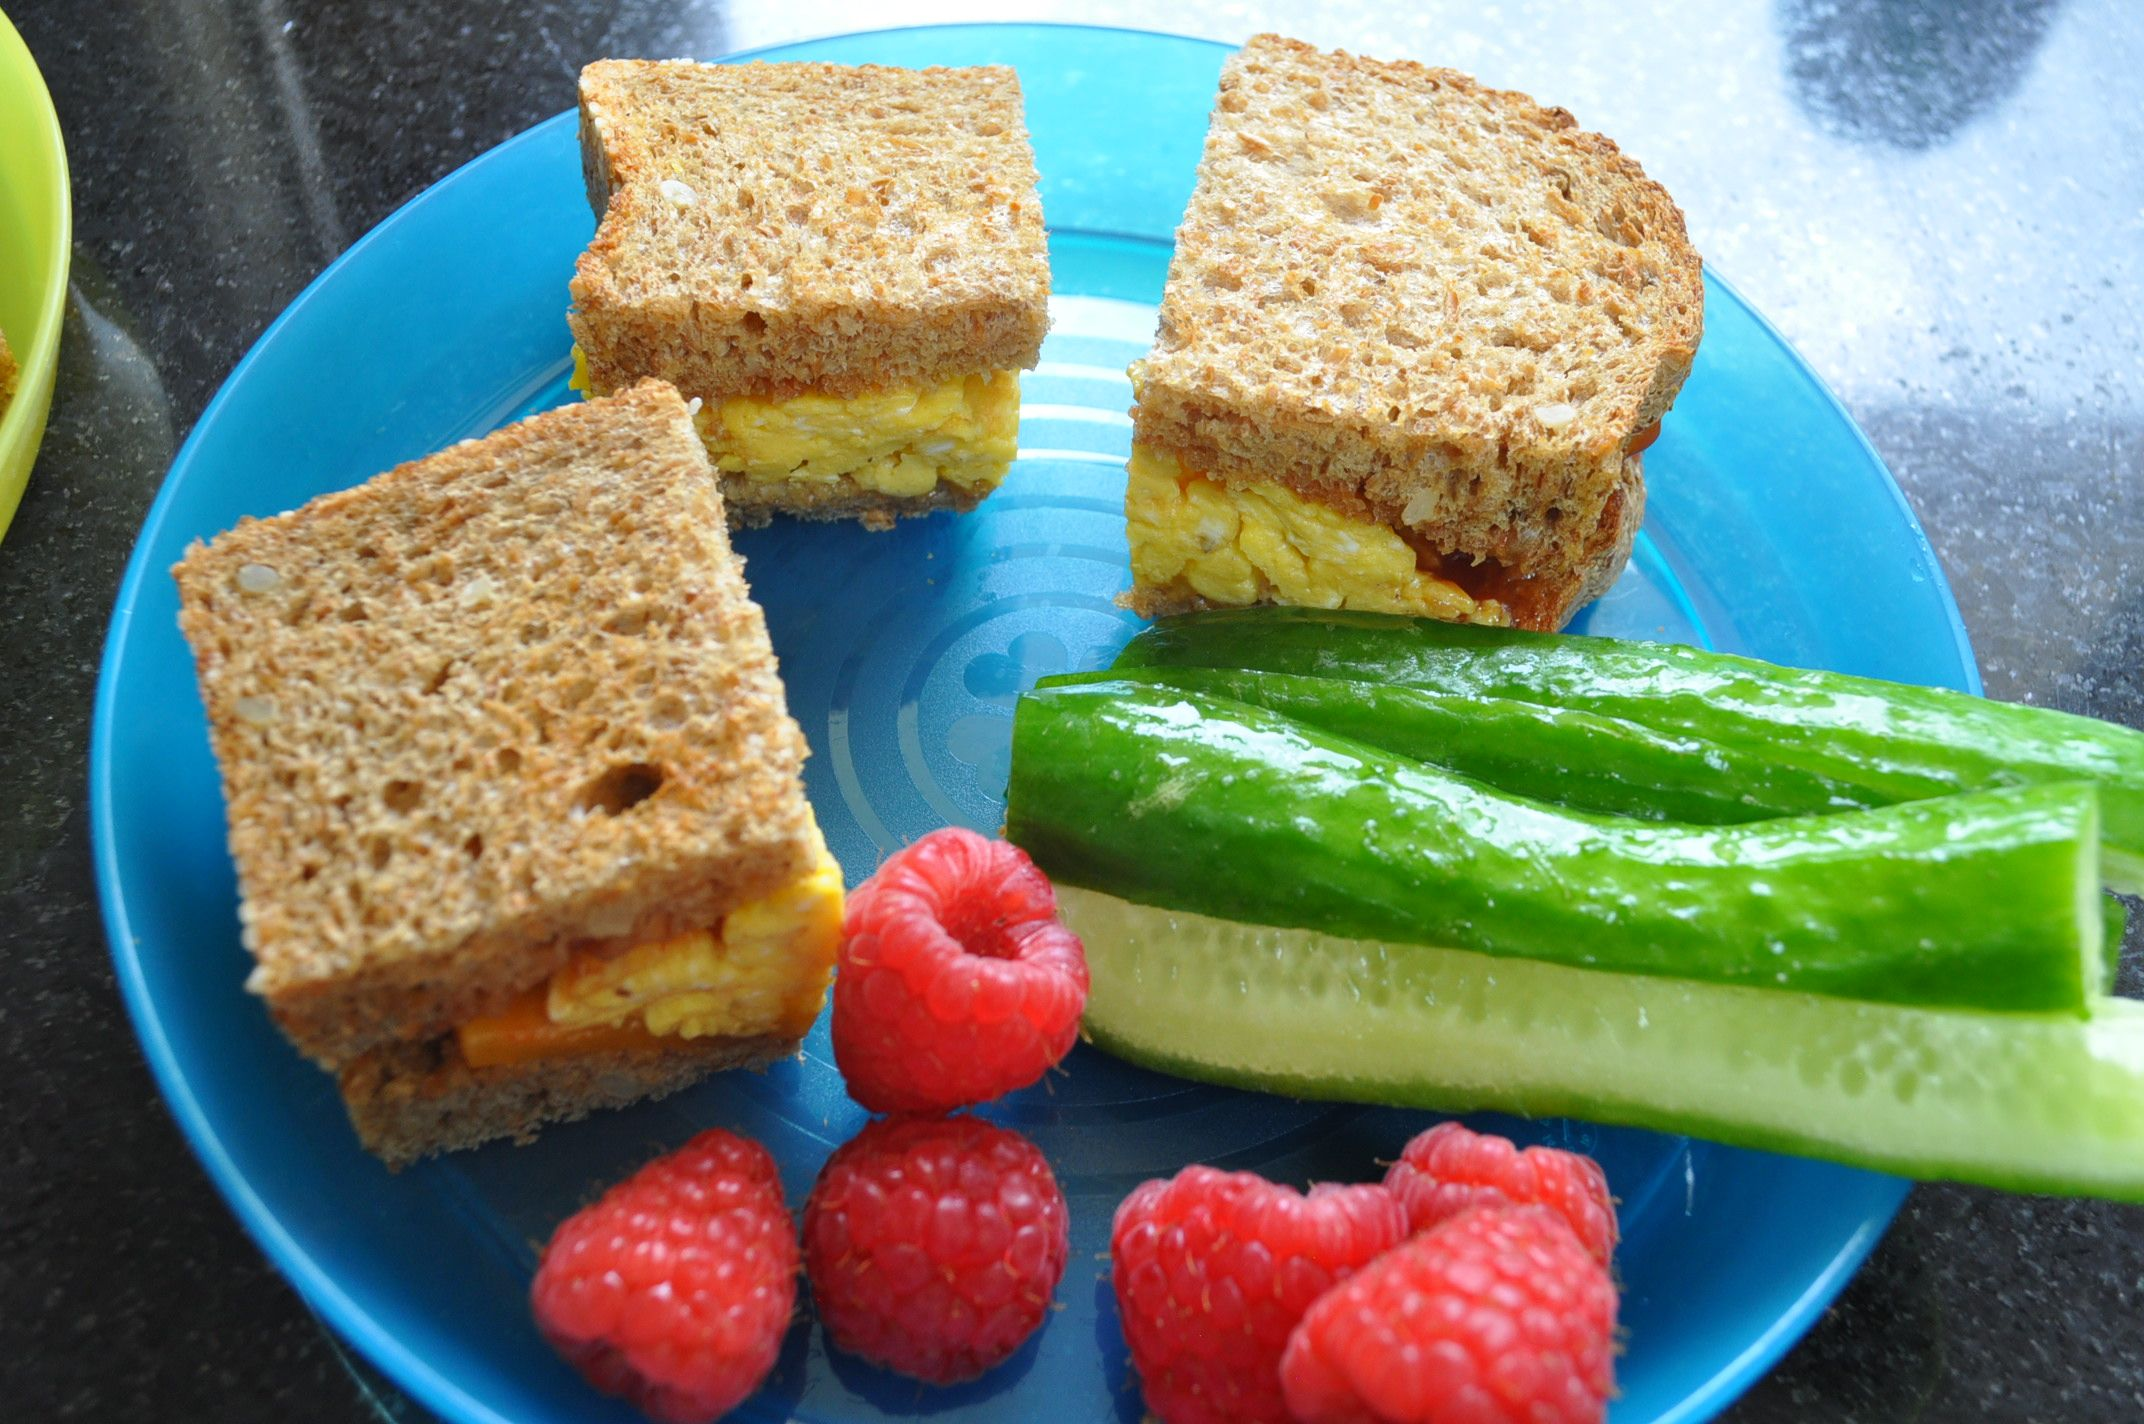 School 39 s out 8 kid friendly easy lunch ideas for Easy lunch ideas for kids at home